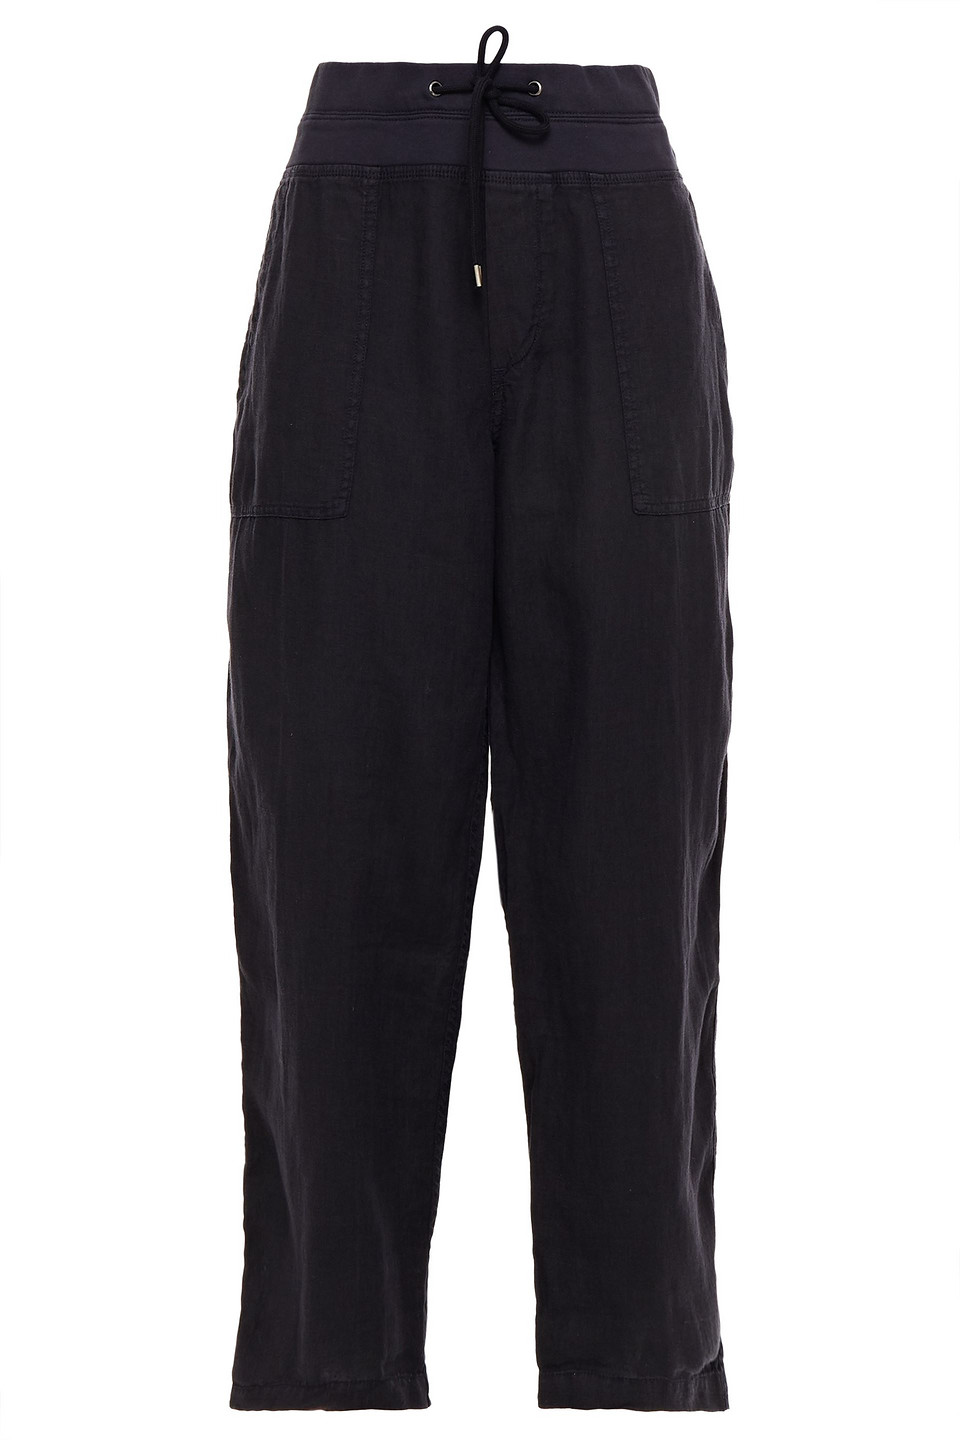 James Perse   James Perse Woman Linen Track Pants Charcoal   Clouty